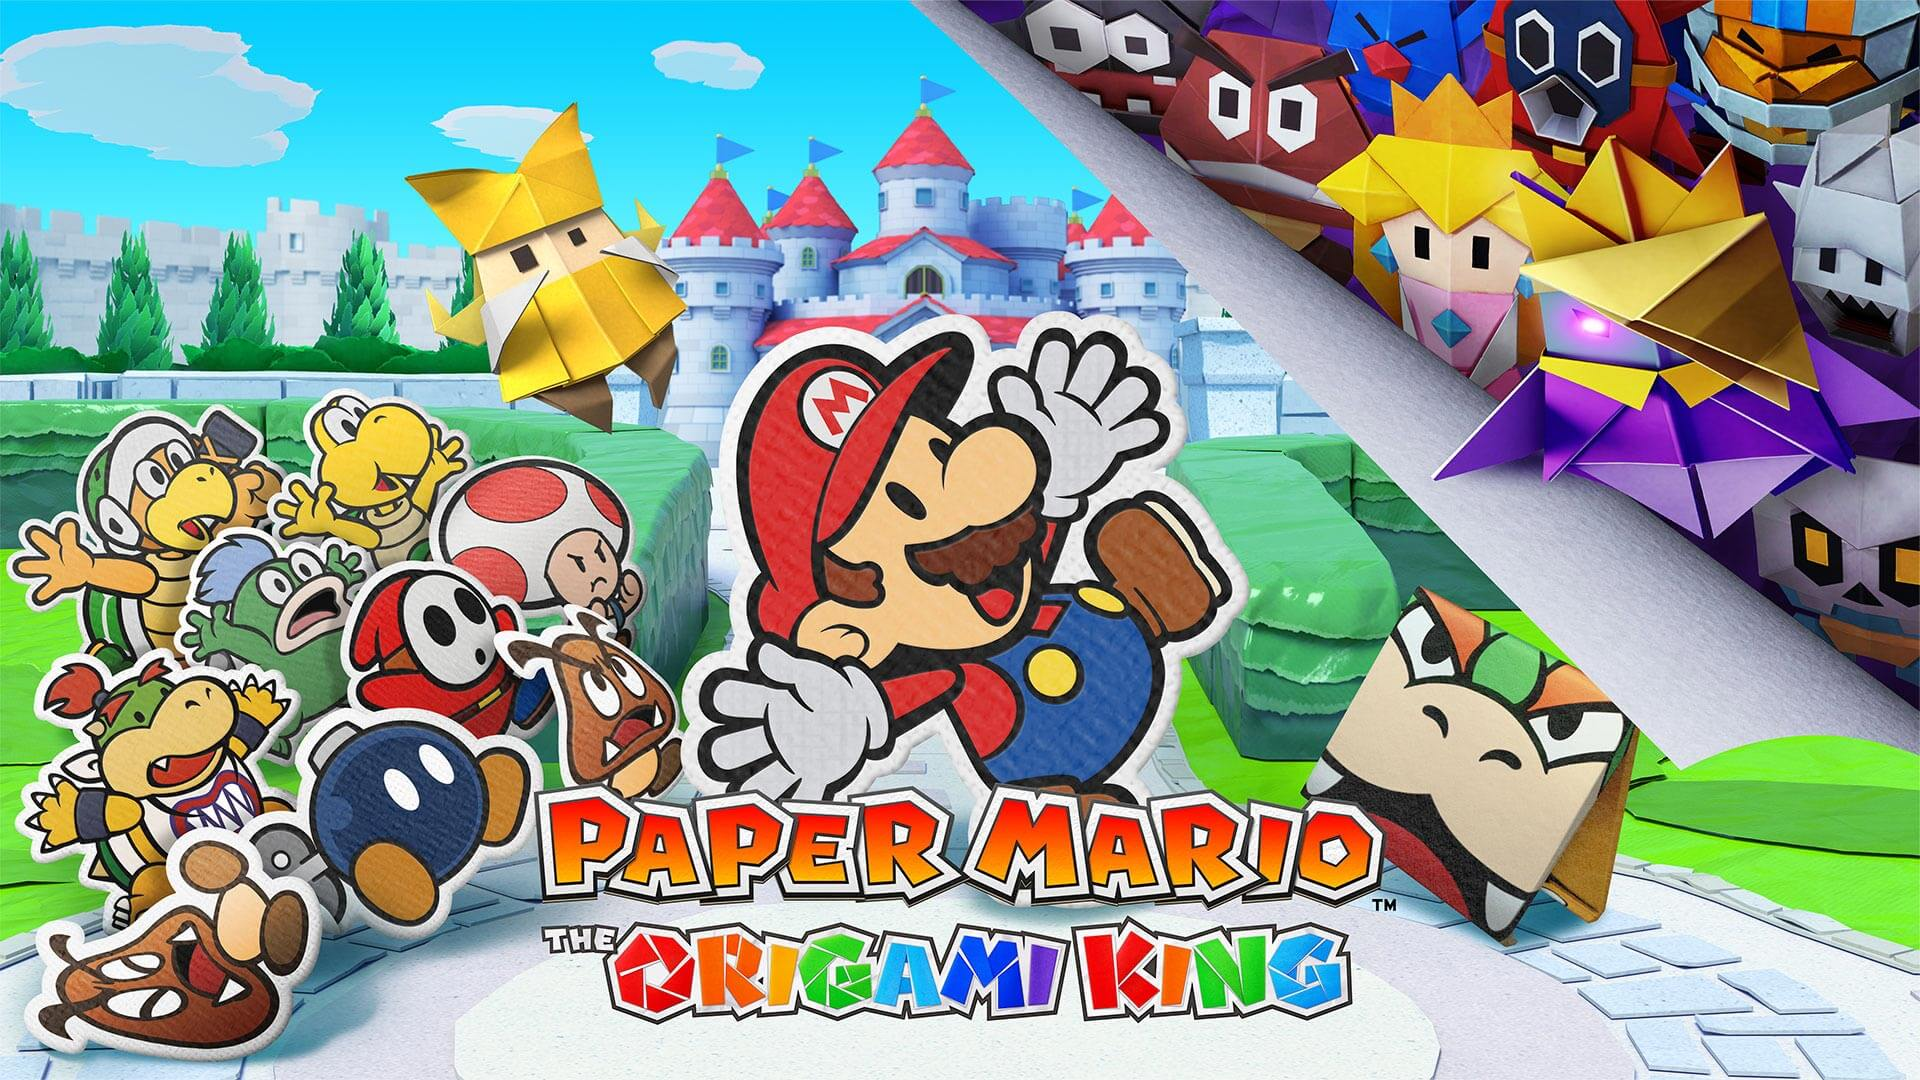 Paper Mario: The Origami King Fastest Selling in Series